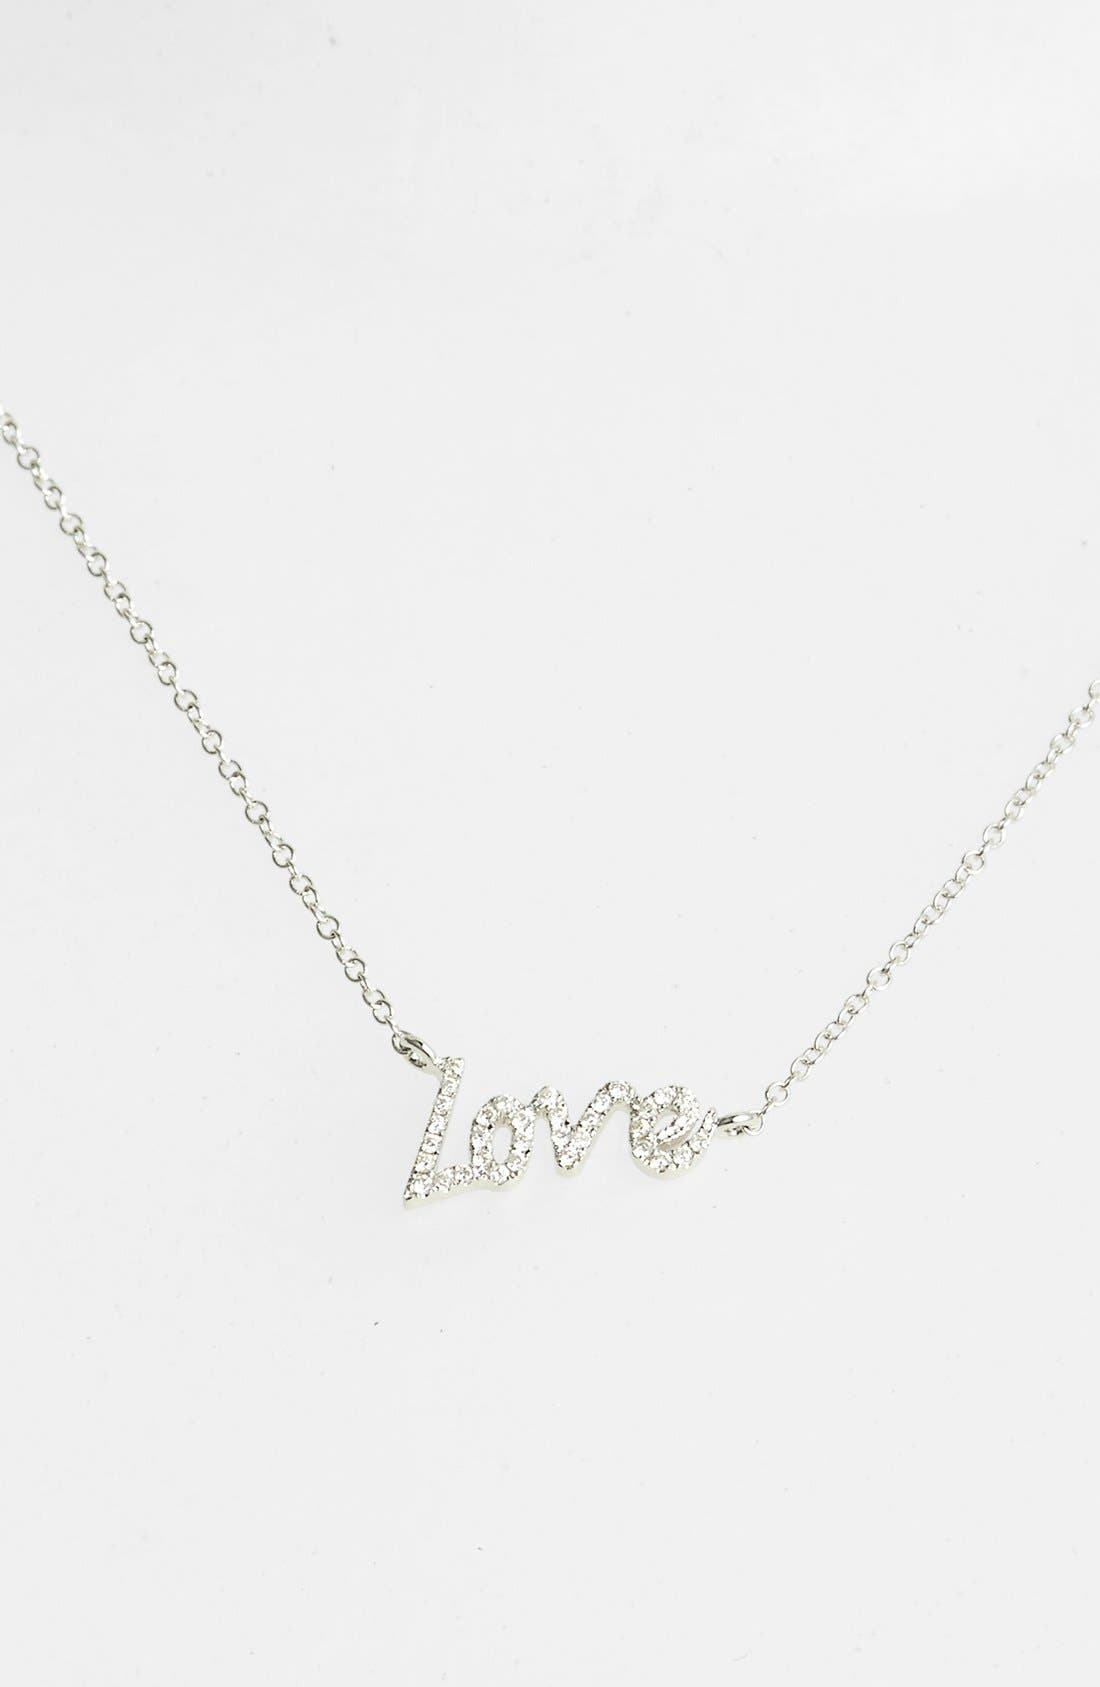 Main Image - MeiraT 'Dazzling' Diamond Love Pendant Necklace